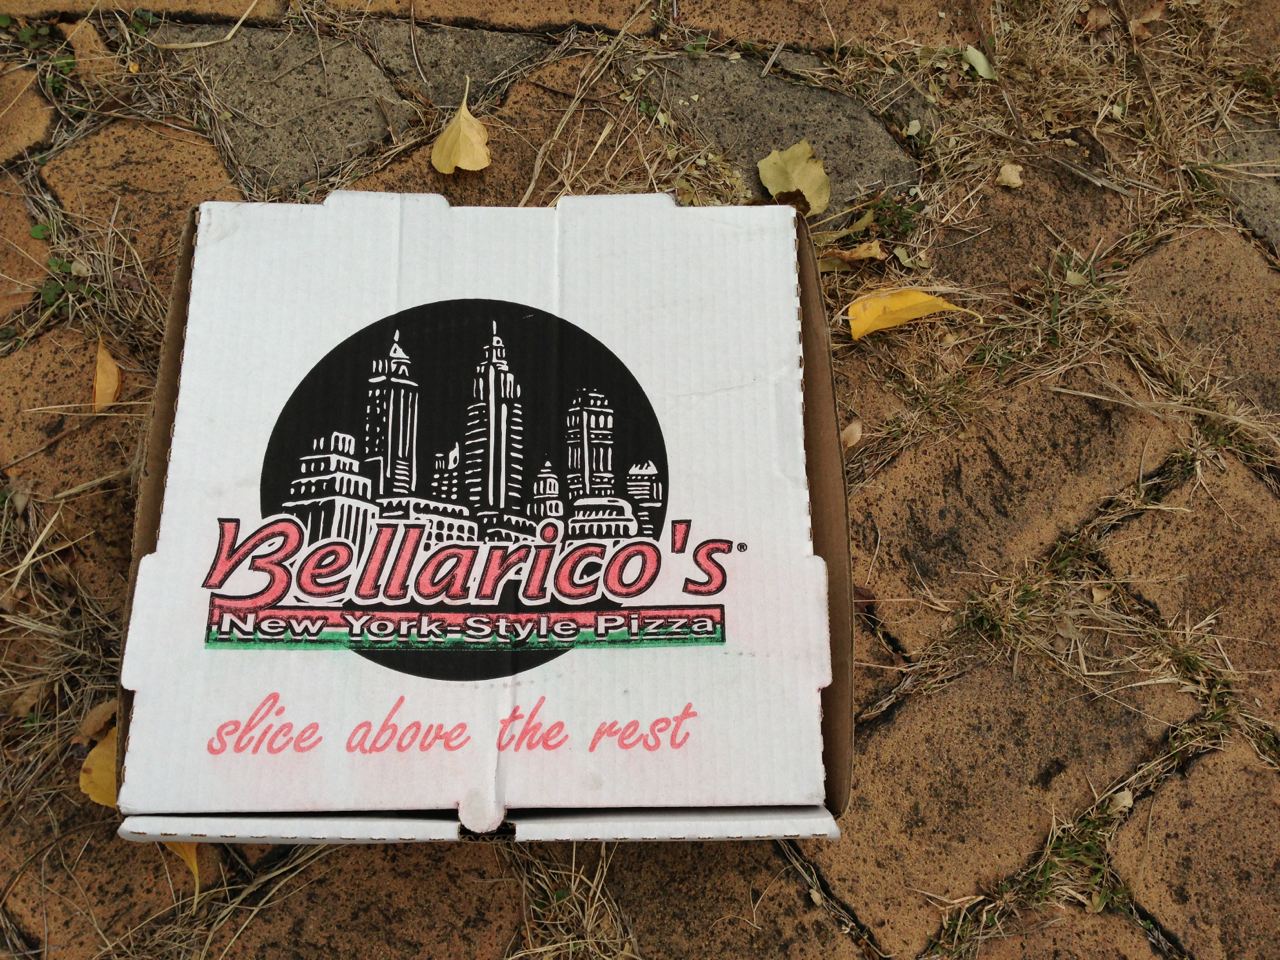 Found this box of pizza while I was out on a delicious Fall walk. There it was, abandoned in some alleyway like a victim on SVU. Would the police be summoned? Who would fight for justice?    The weird thing about this box is that I've never heard of Bellarico's pizza. Never mind that my last name is eerily similar and there doesn't seem to be a Bellarico's in Pittsburgh. Maybe this pizza box was sent back in time to guide me along my pizza journey?